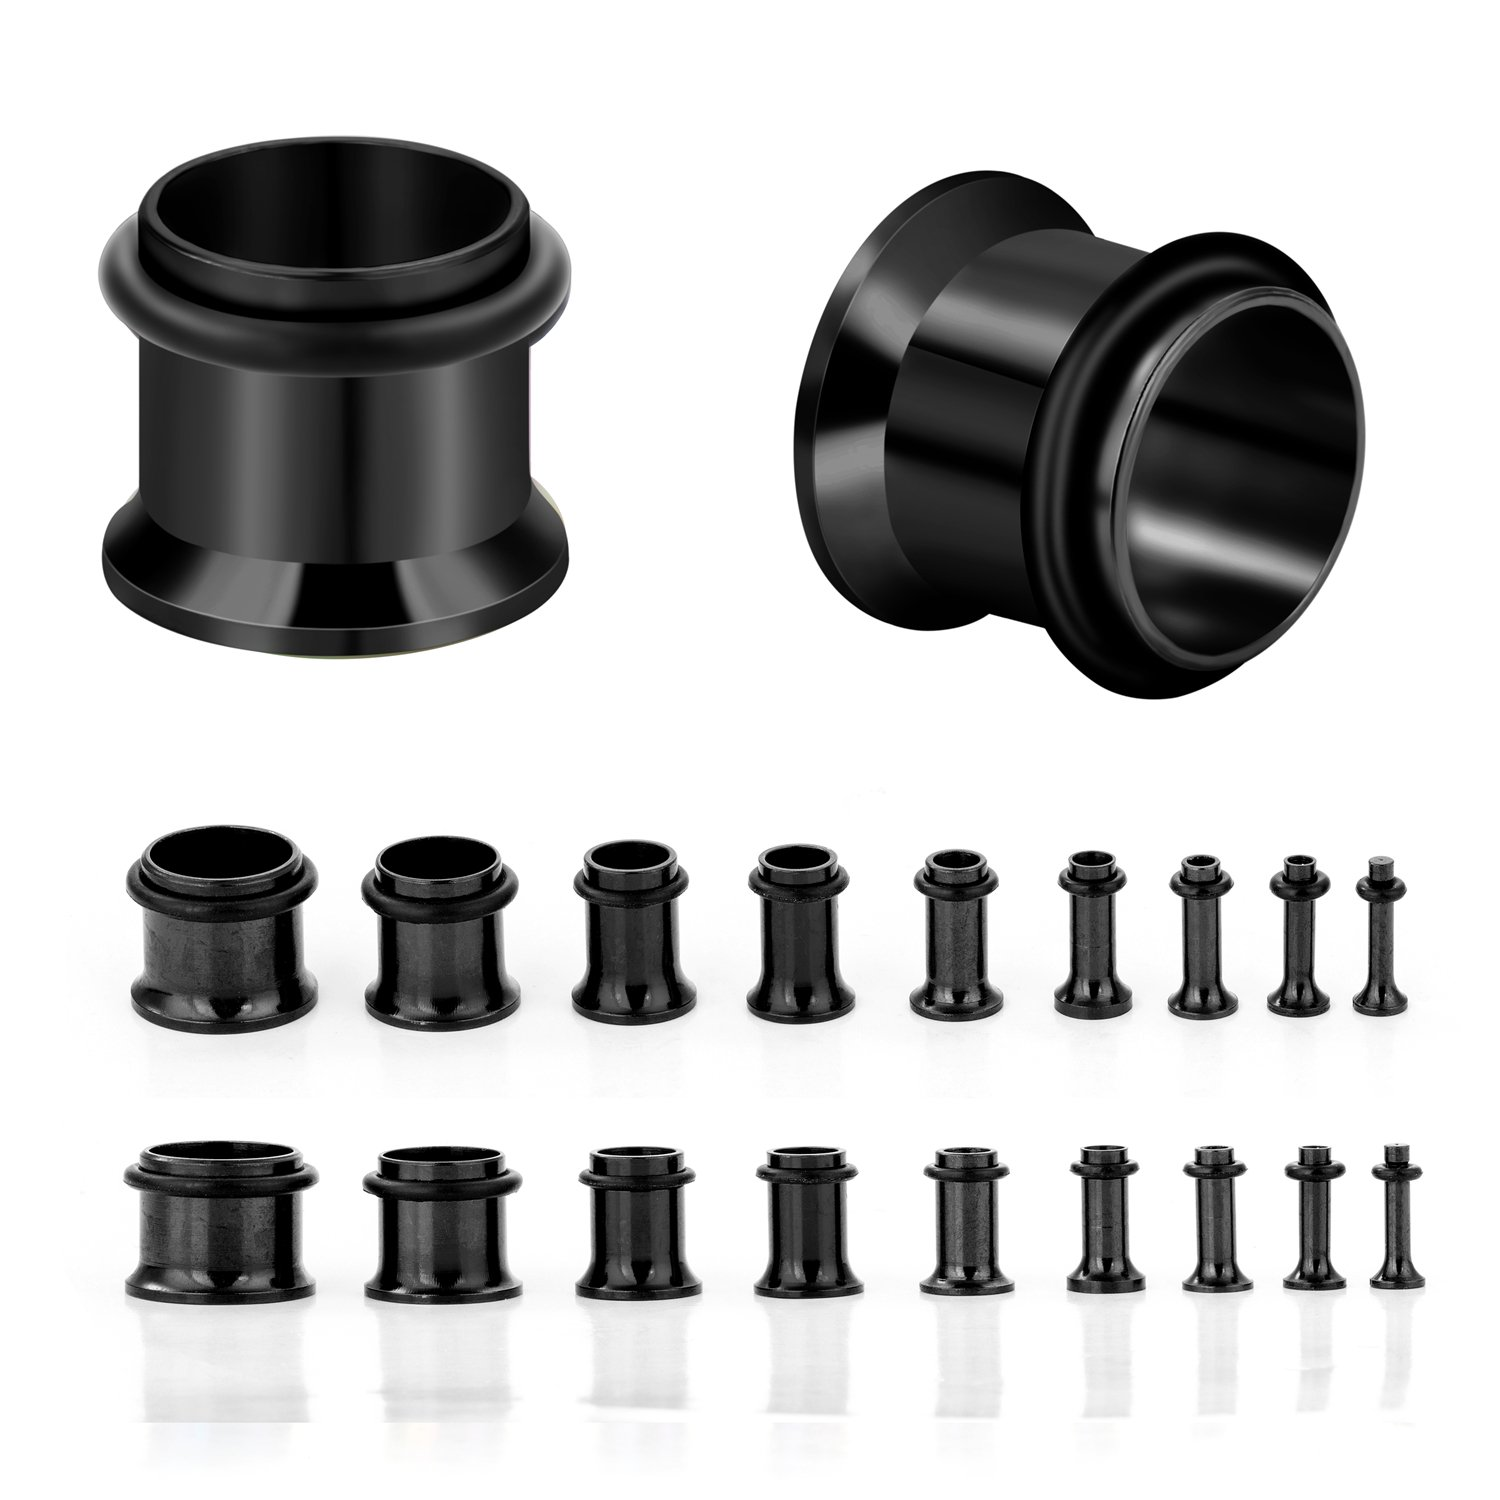 CABBE KALLO 18PCS Ear Plugs Stretching Kit Stainless Steel Gauge Tunnel Set Single Flared Expanders 14G-00G (Black)